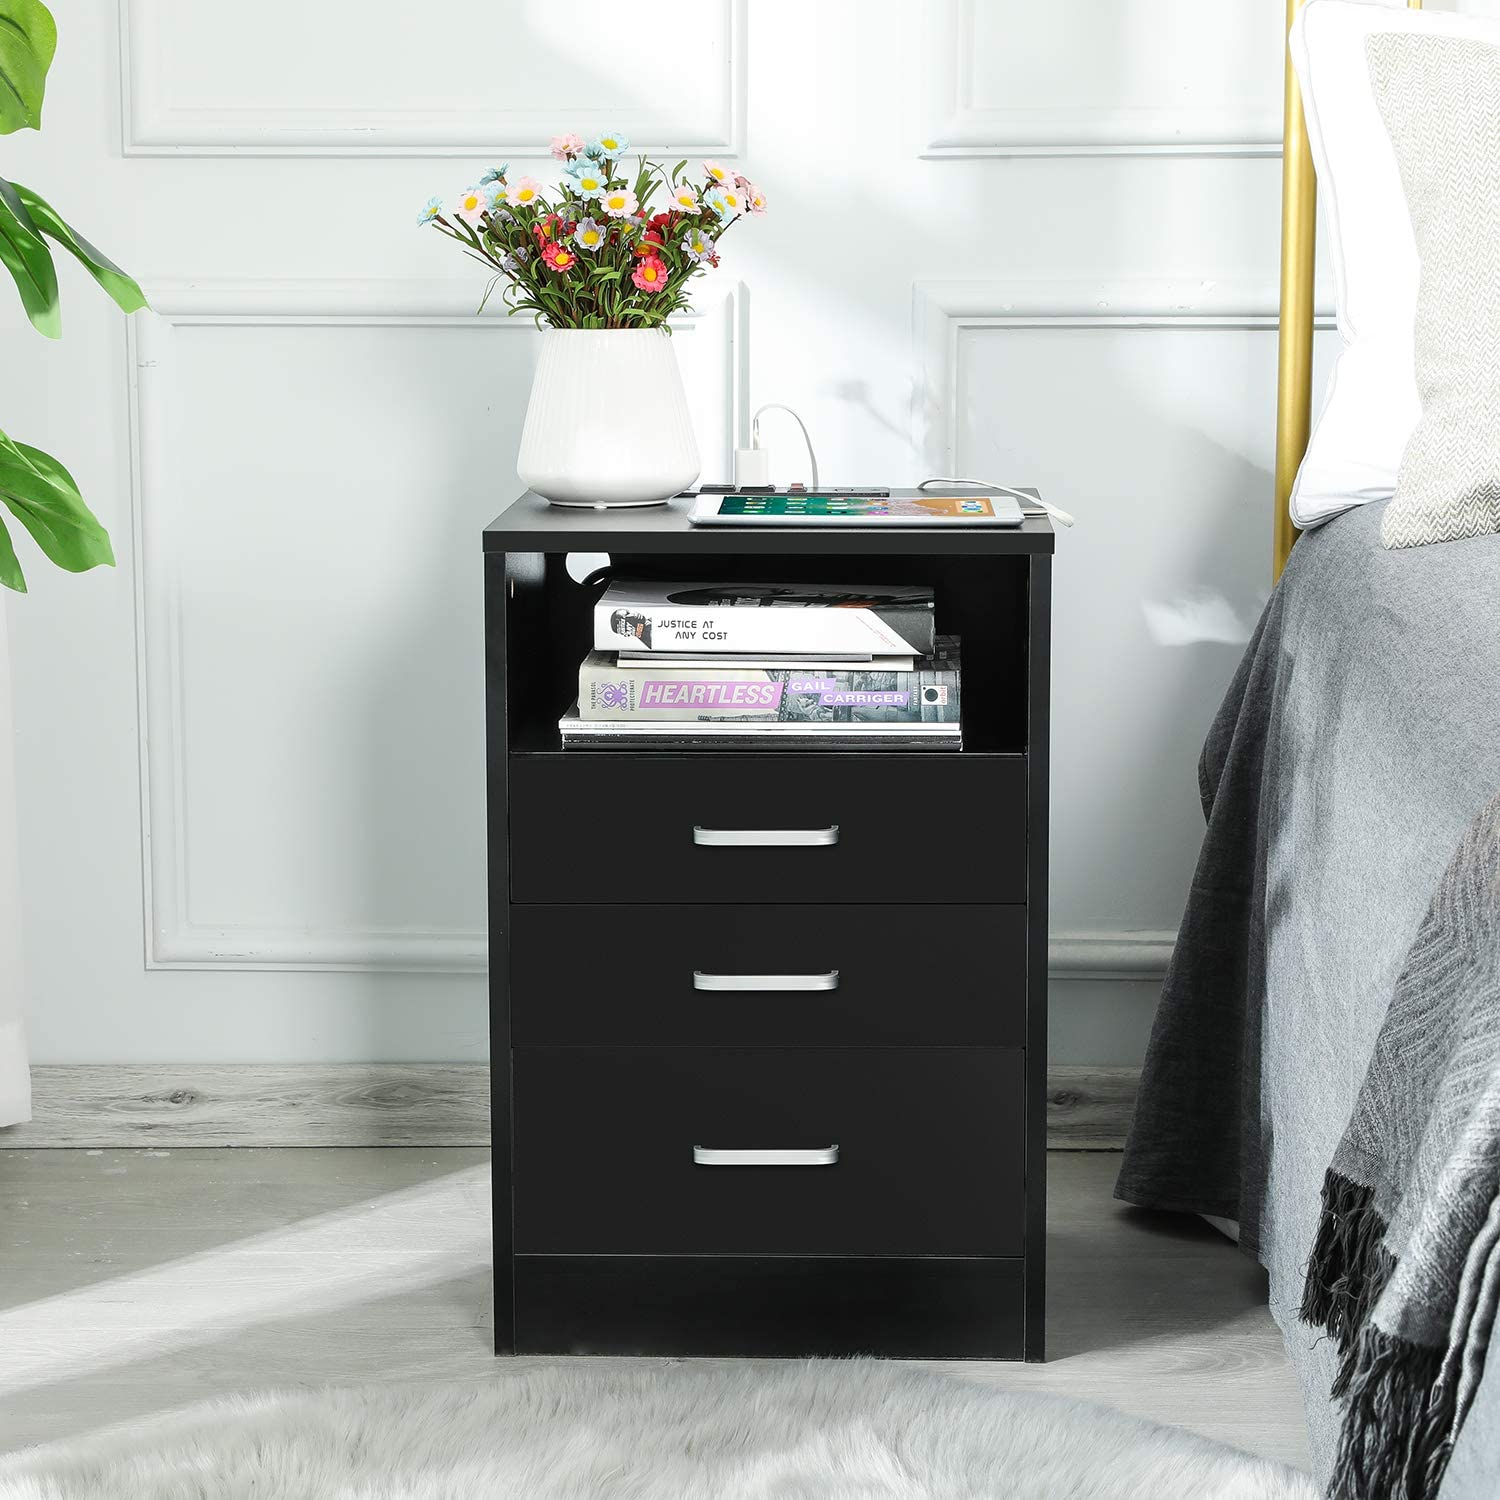 Buy Adorneve Black Nightstand 3 Drawers With Usb Port Bedroom End Table Side Table Wooden Sofa Side Stand Cabinet With Sliding Drawer Open Storage Online In Poland B08qrnk1dt